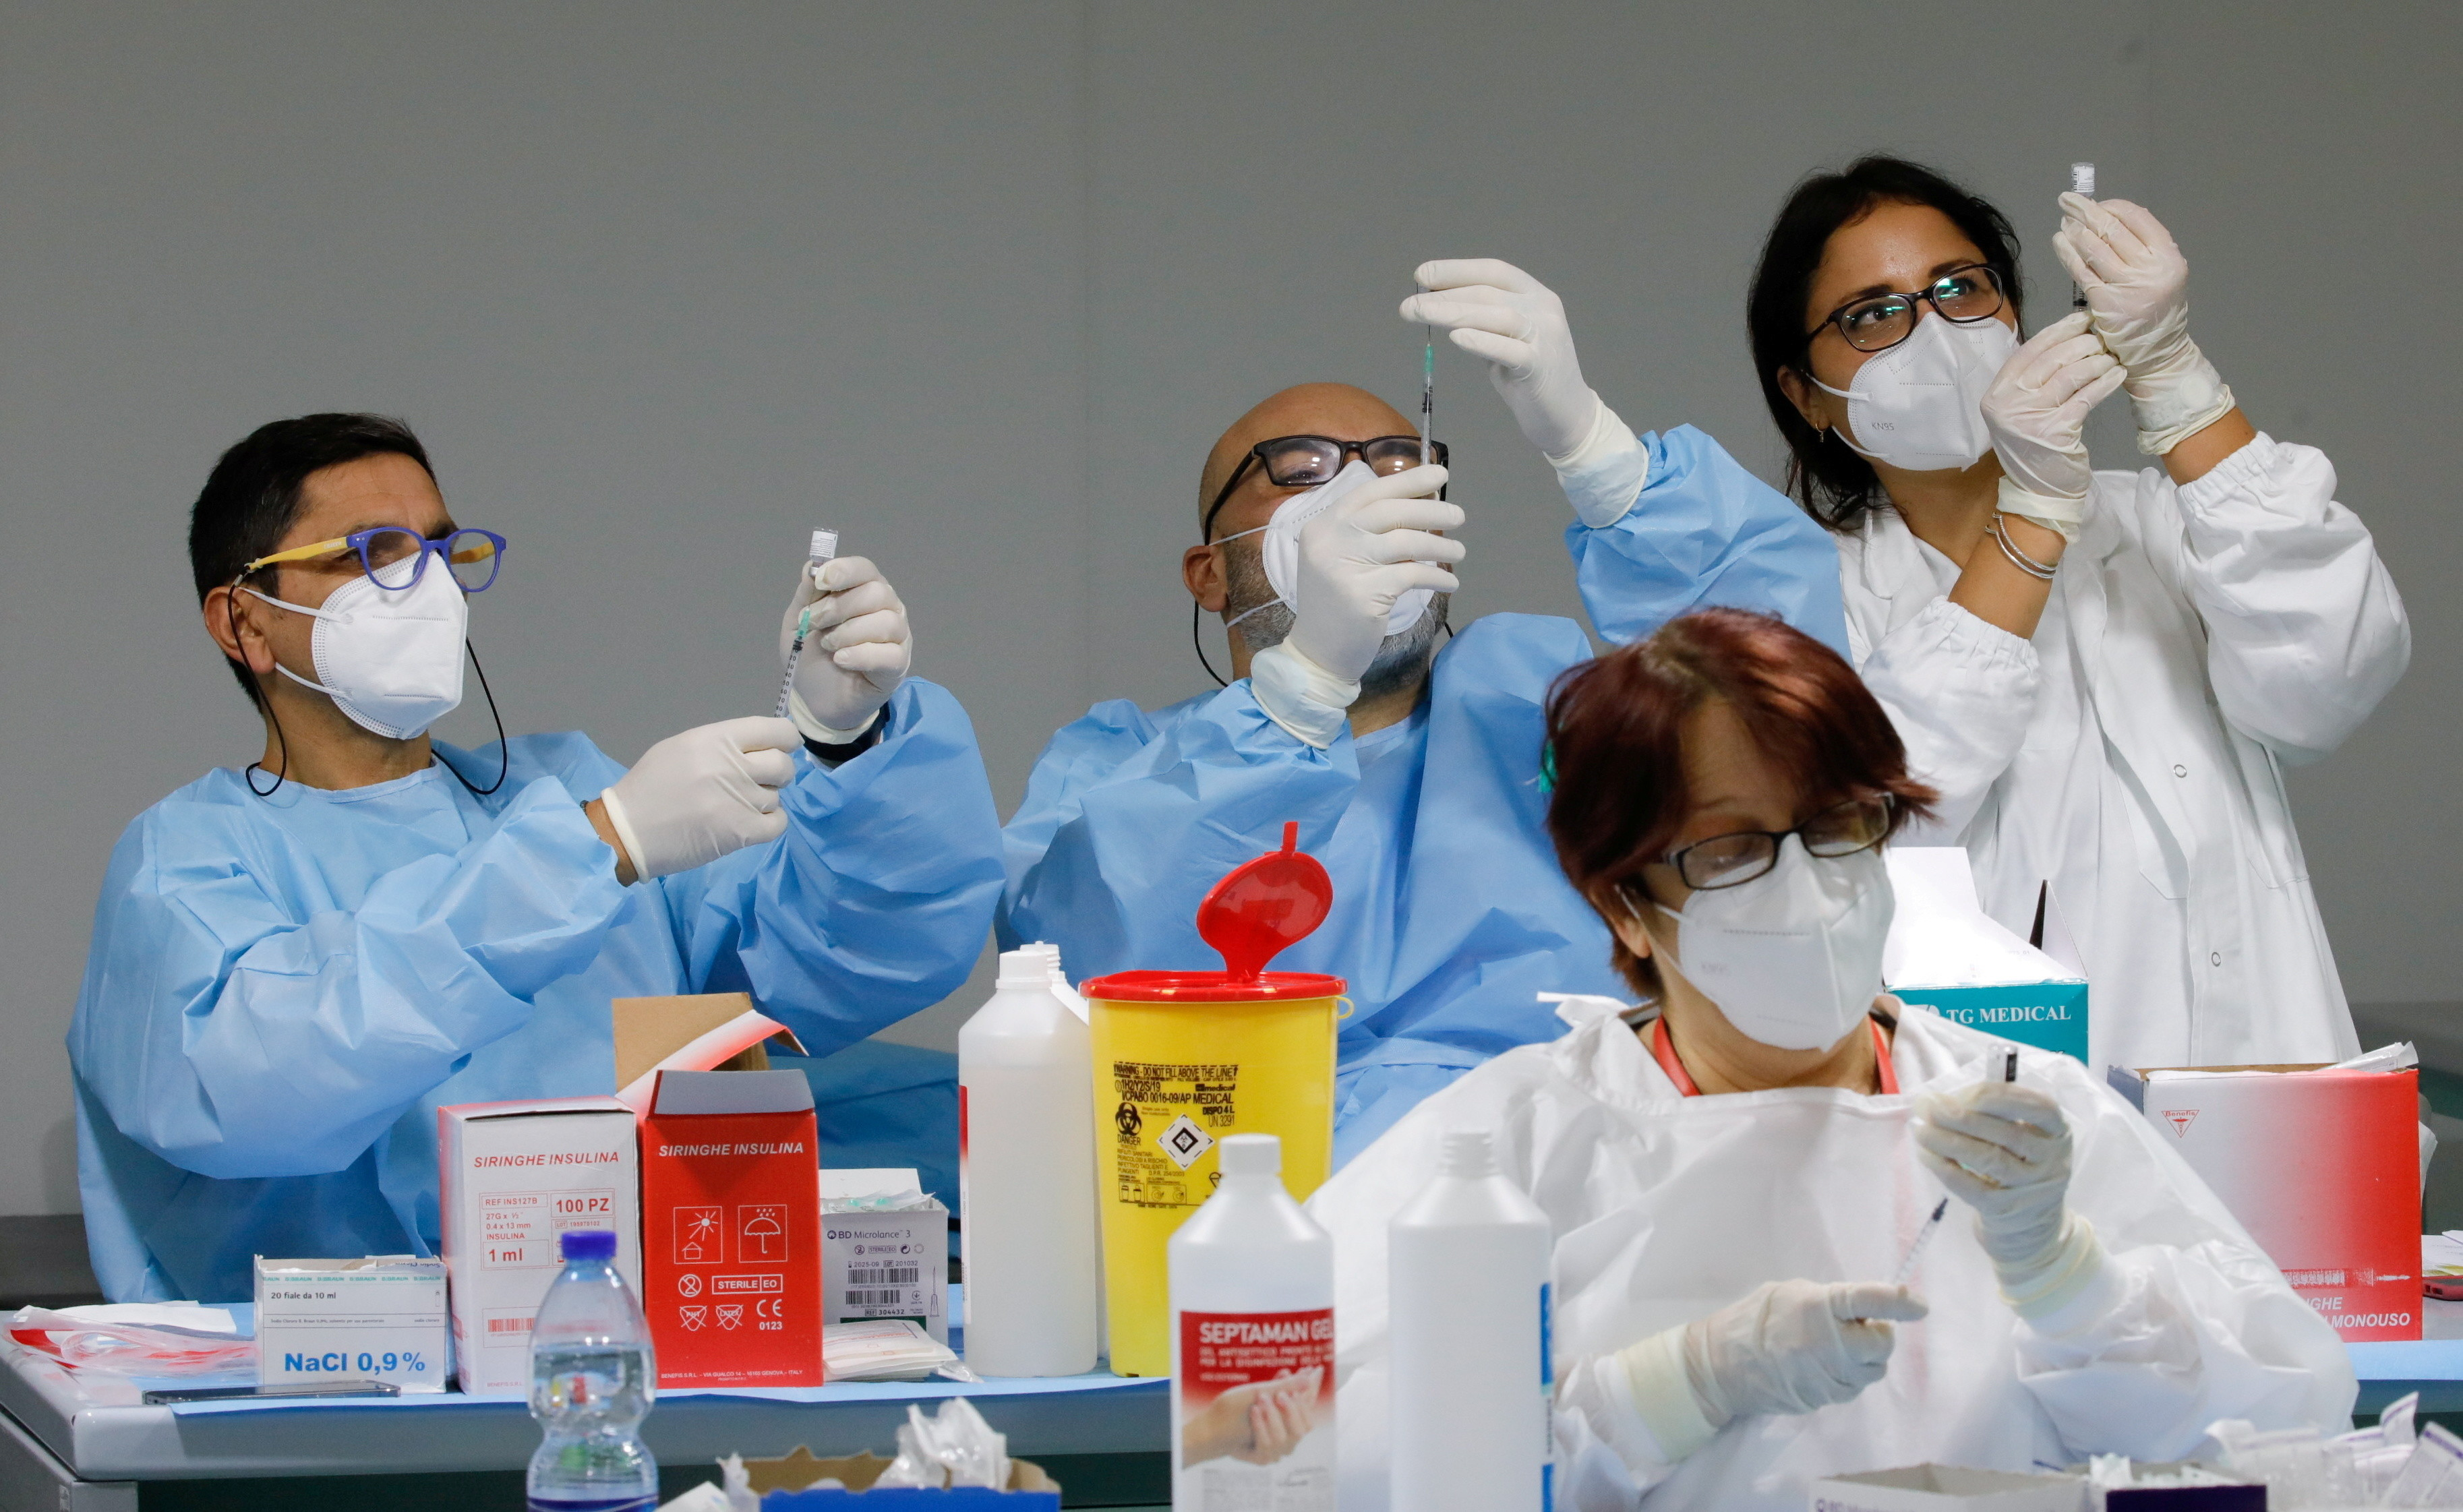 Health workers prepare doses of the Pfizer-BioNTech COVID-19 vaccine at a coronavirus disease (COVID-19) vaccination centre in Naples, Italy, January 8, 2021. REUTERS/Ciro De Luca     TPX IMAGES OF THE DAY - RC2O3L9LM2DL